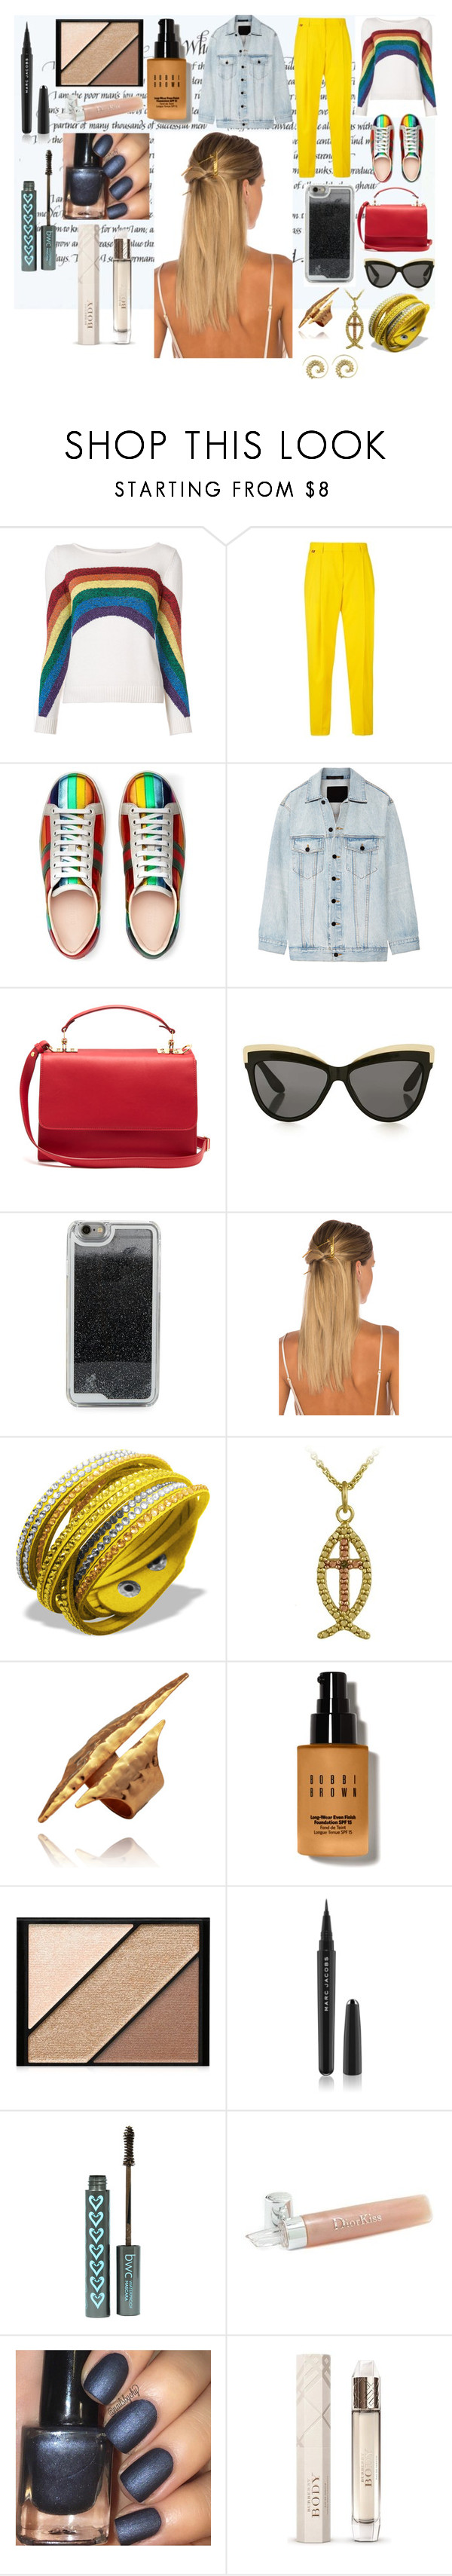 """""""Abibliophobia."""" by it-srabina ❤ liked on Polyvore featuring Marc Jacobs, Paul Smith, Gucci, Alexander Wang, Sophie Hulme, Topshop, LMNT, HAIR DESIGNACCESS, DB Designs and Bobbi Brown Cosmetics"""